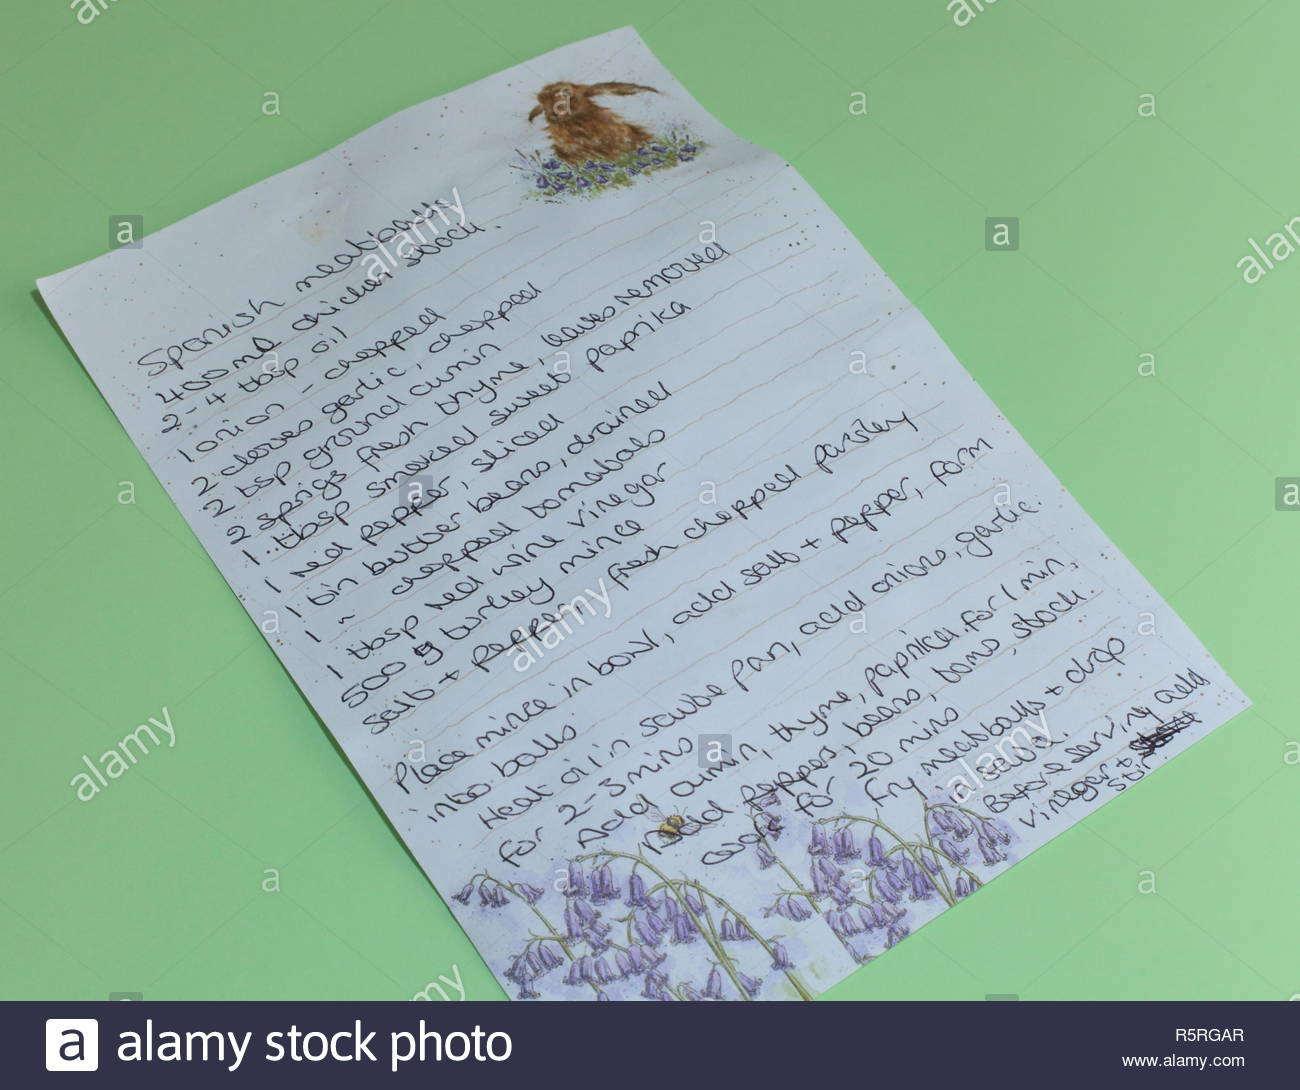 A Hand Written Recipe For Spanish Meatballs Stock Photo